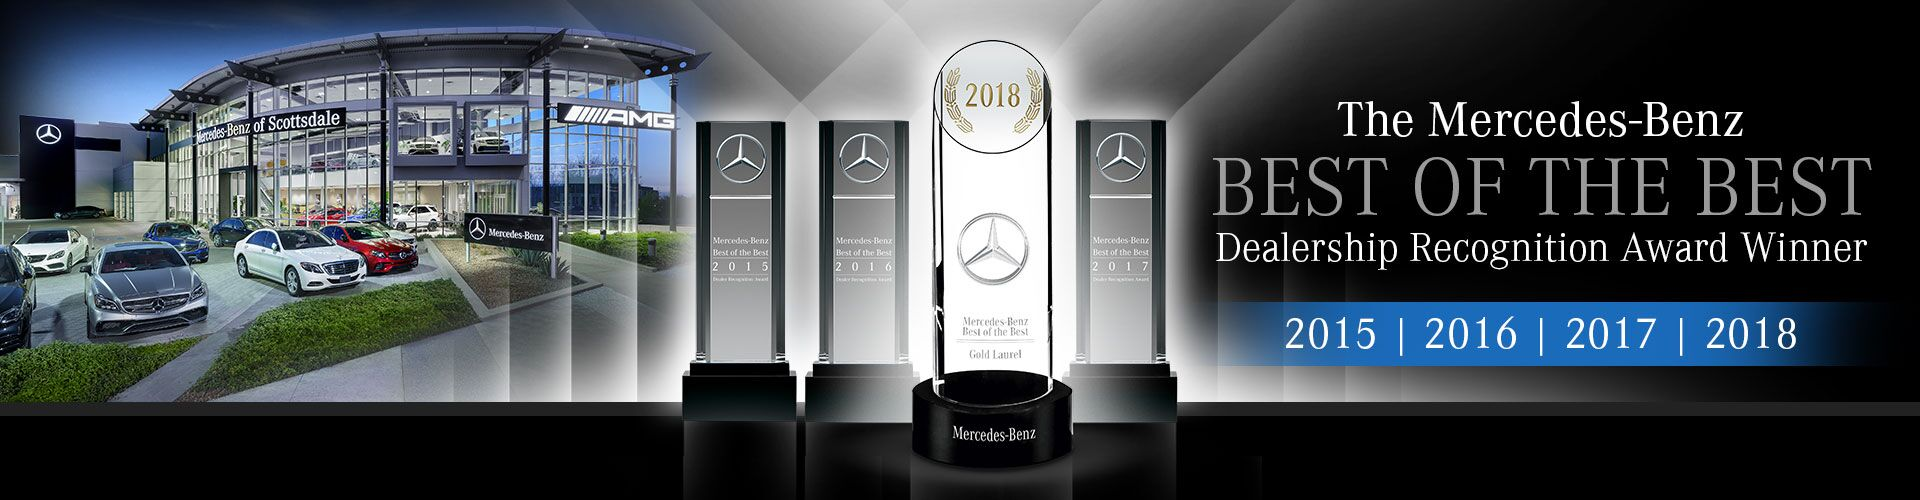 2018 Mercedes-Benz Best of the Best Dealership Award Winner